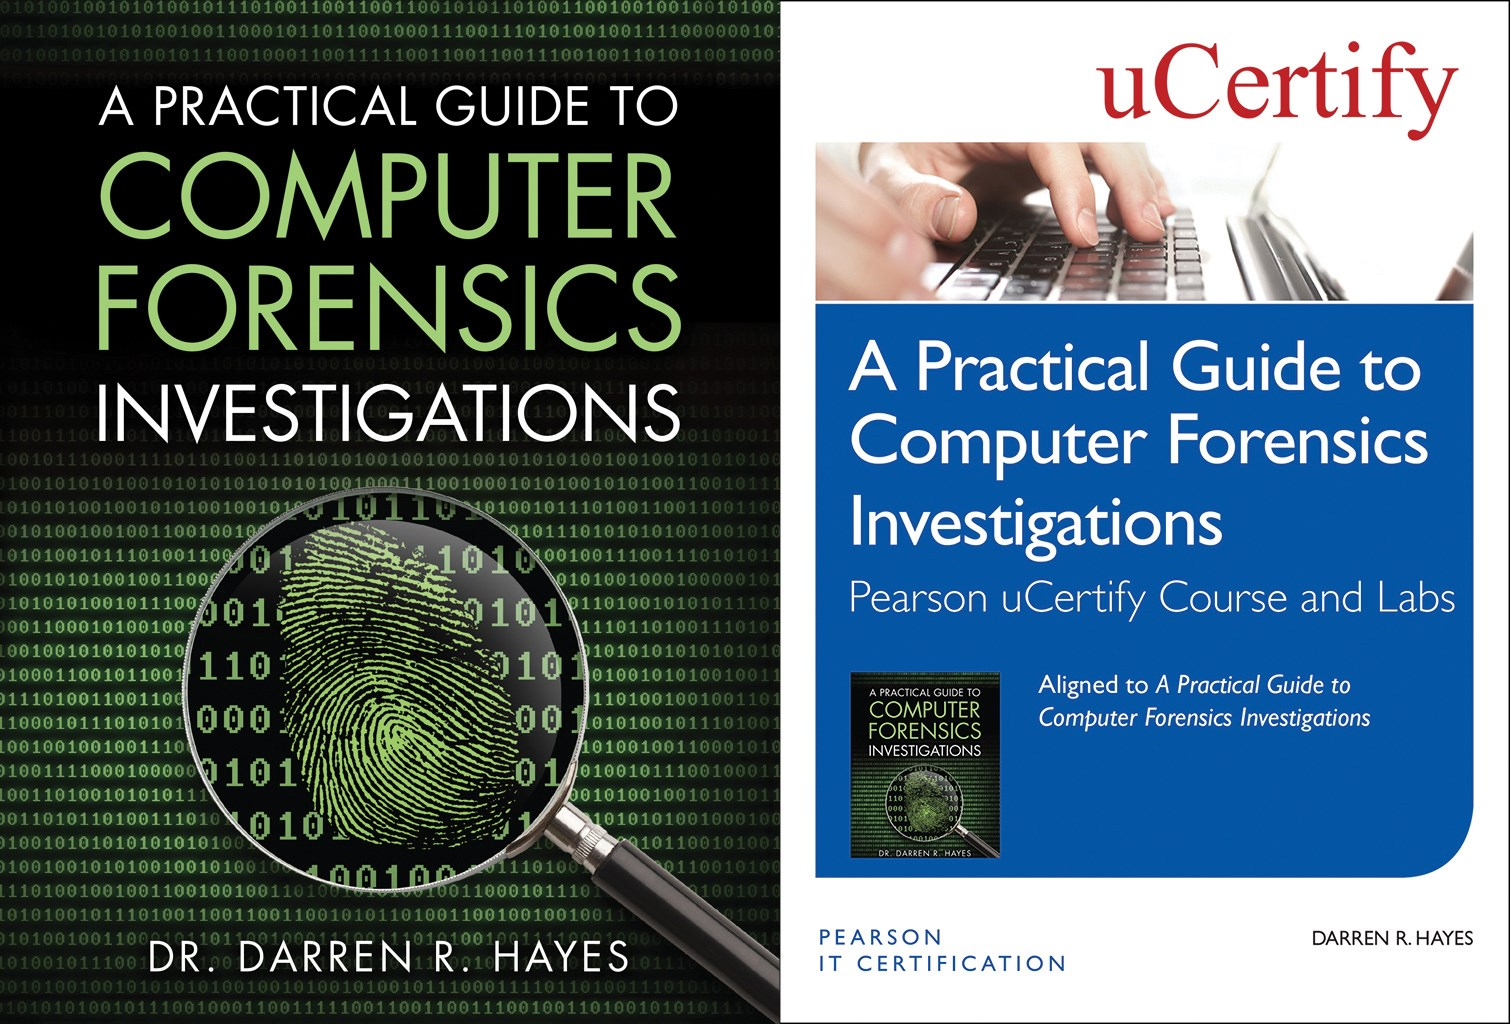 A Practical Guide to Computer Forensics Investigations Pearson uCertify Course and Labs and Textbook